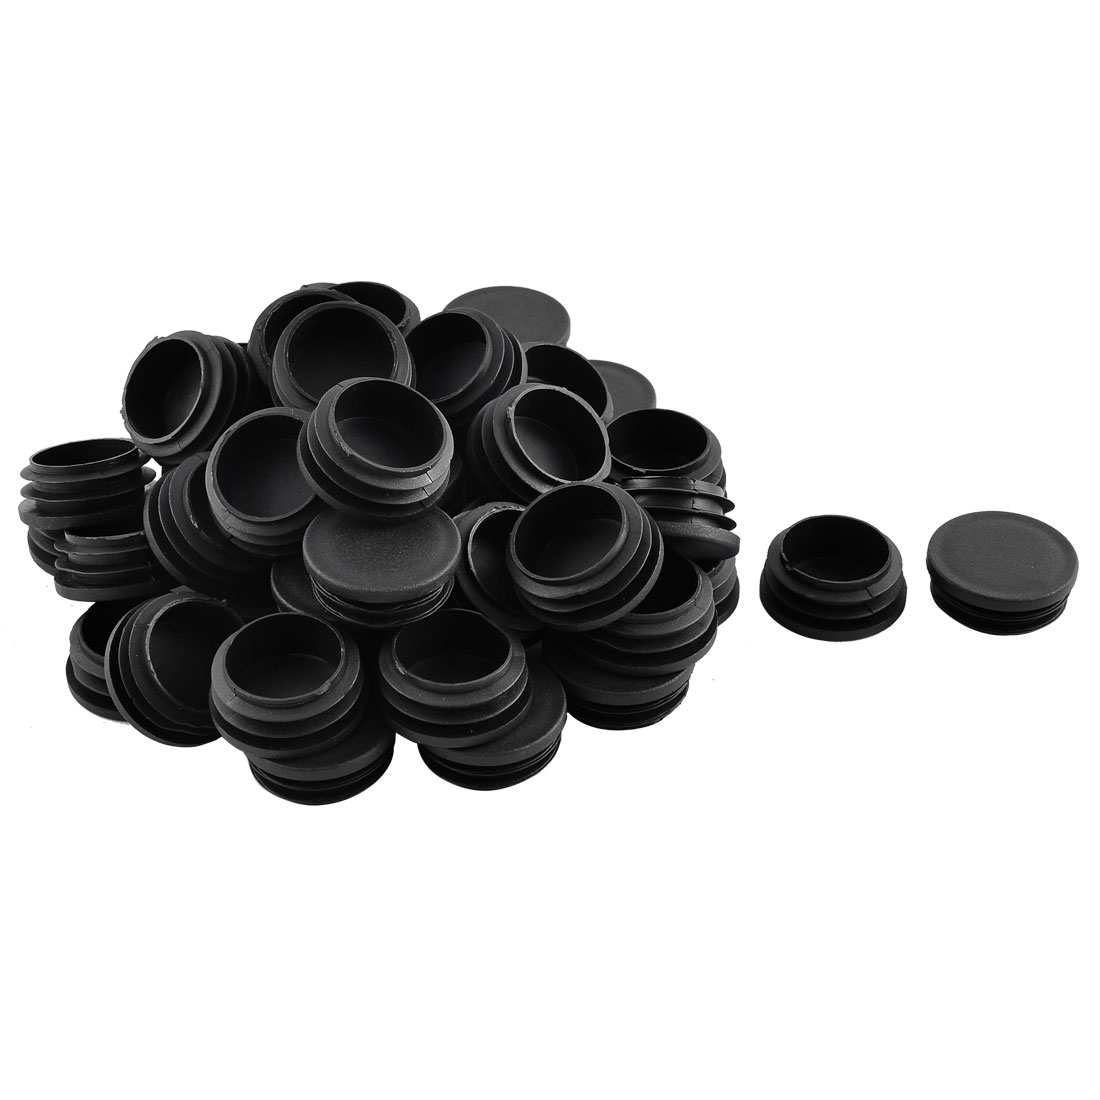 School Plastic Cylindrical Shaped Furniture Table Chair Leg Feet Tube Insert Black 50 Pcs